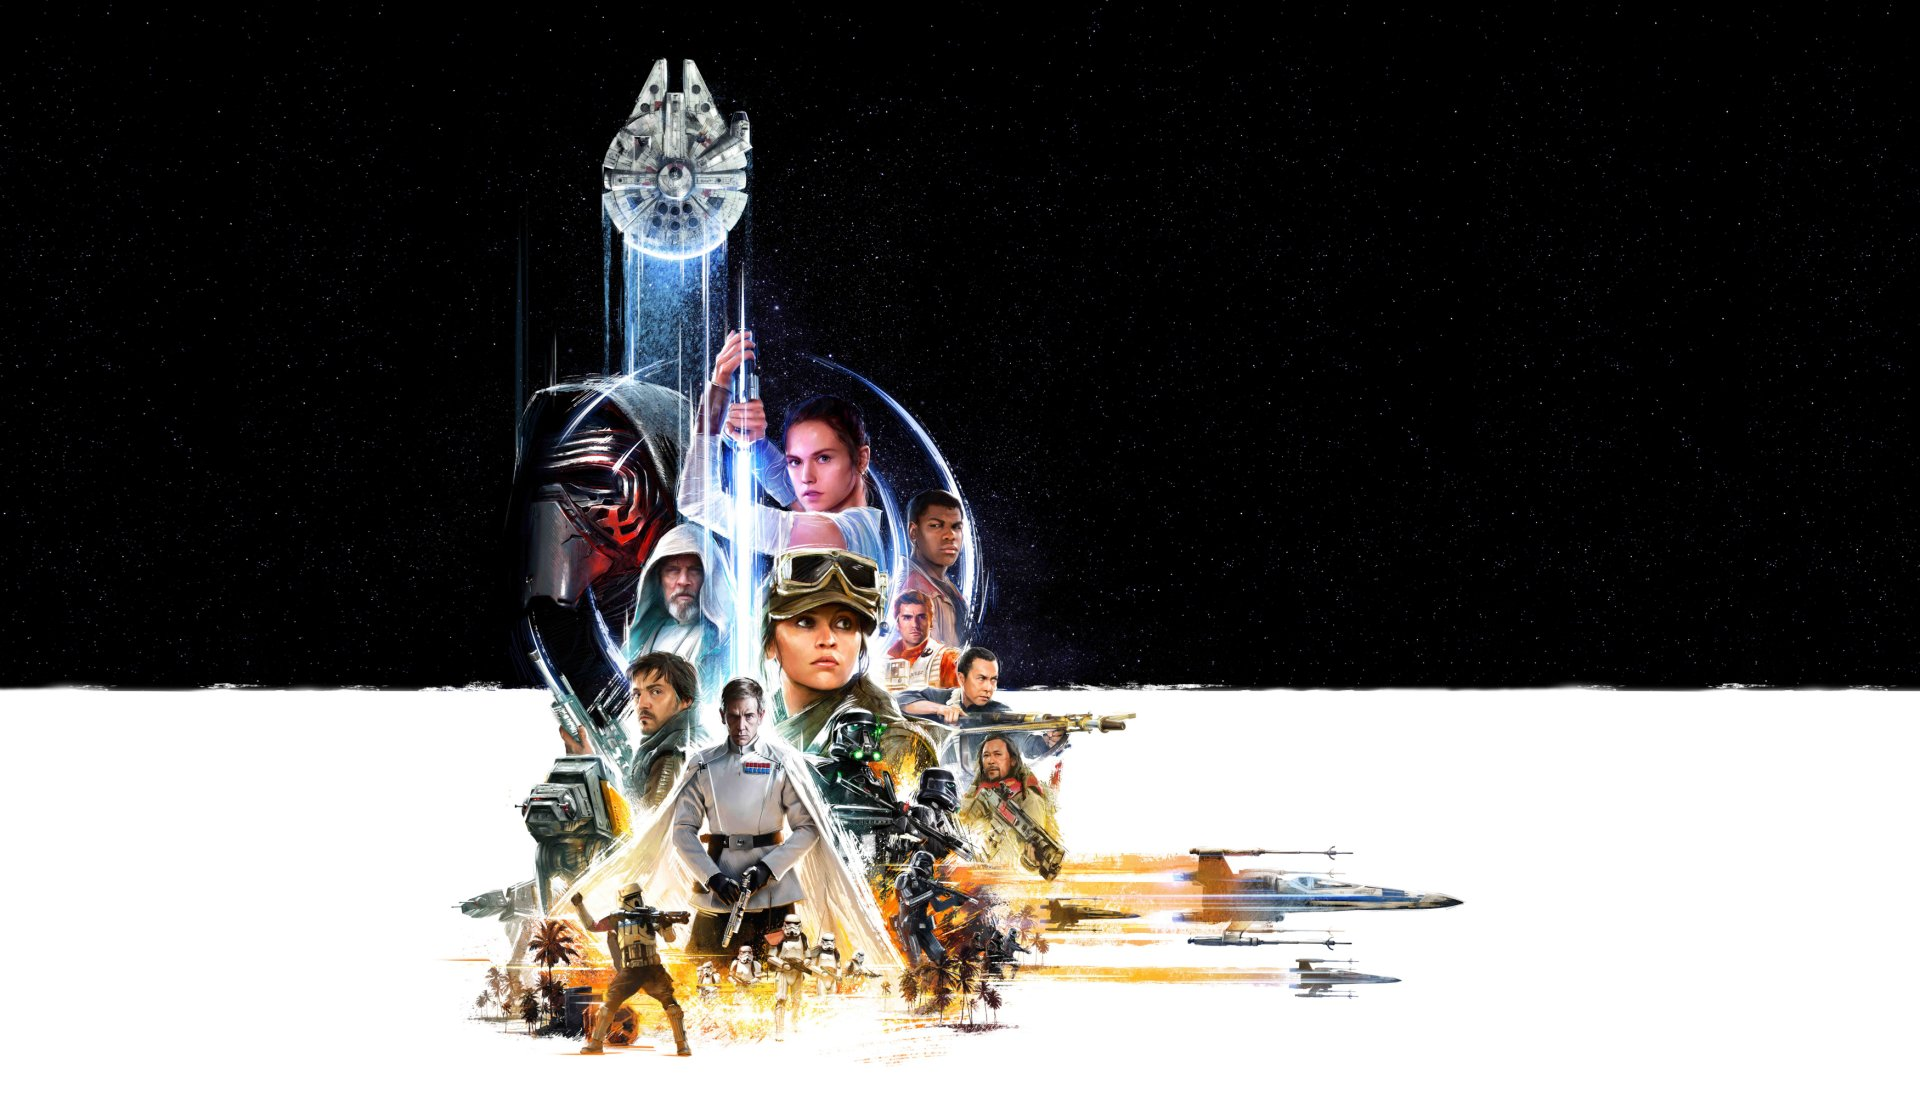 Movie - Star Wars  Kylo Ren Oscar Isaac Jyn Erso Diego Luna Ben Mendelsohn Cassian Andor Donnie Yen Luke Skywalker Poe Dameron Rey (Star Wars) Felicity Jones Adam Driver Mark Hamill Daisy Ridley John Boyega Finn (Star Wars) Millennium Falcon Rogue One: A Star Wars Story Star Wars Episode VII: The Force Awakens Collage Wallpaper